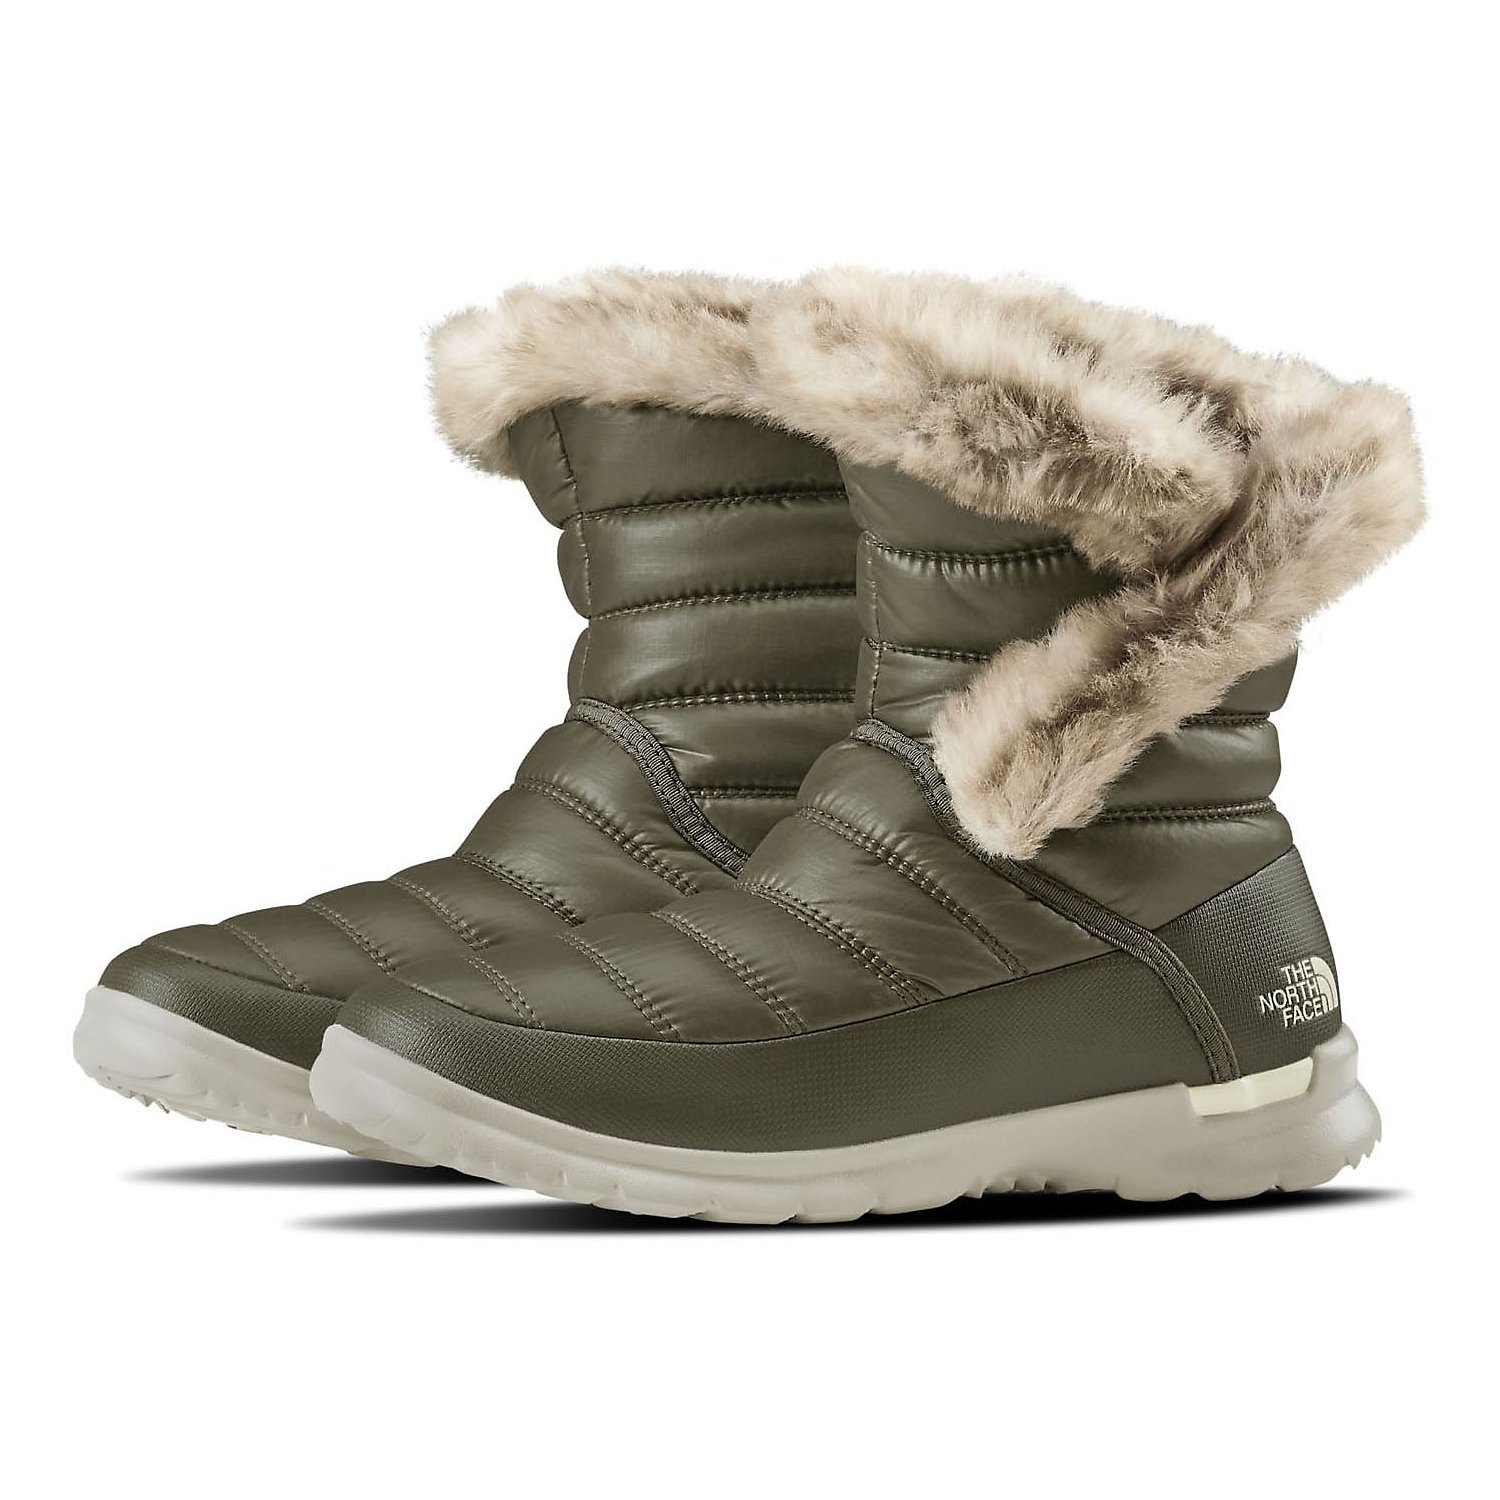 The North Face Damens's Thermoball Microbaffle Bootie Boot II Boot Bootie Moosejaw 6e4034